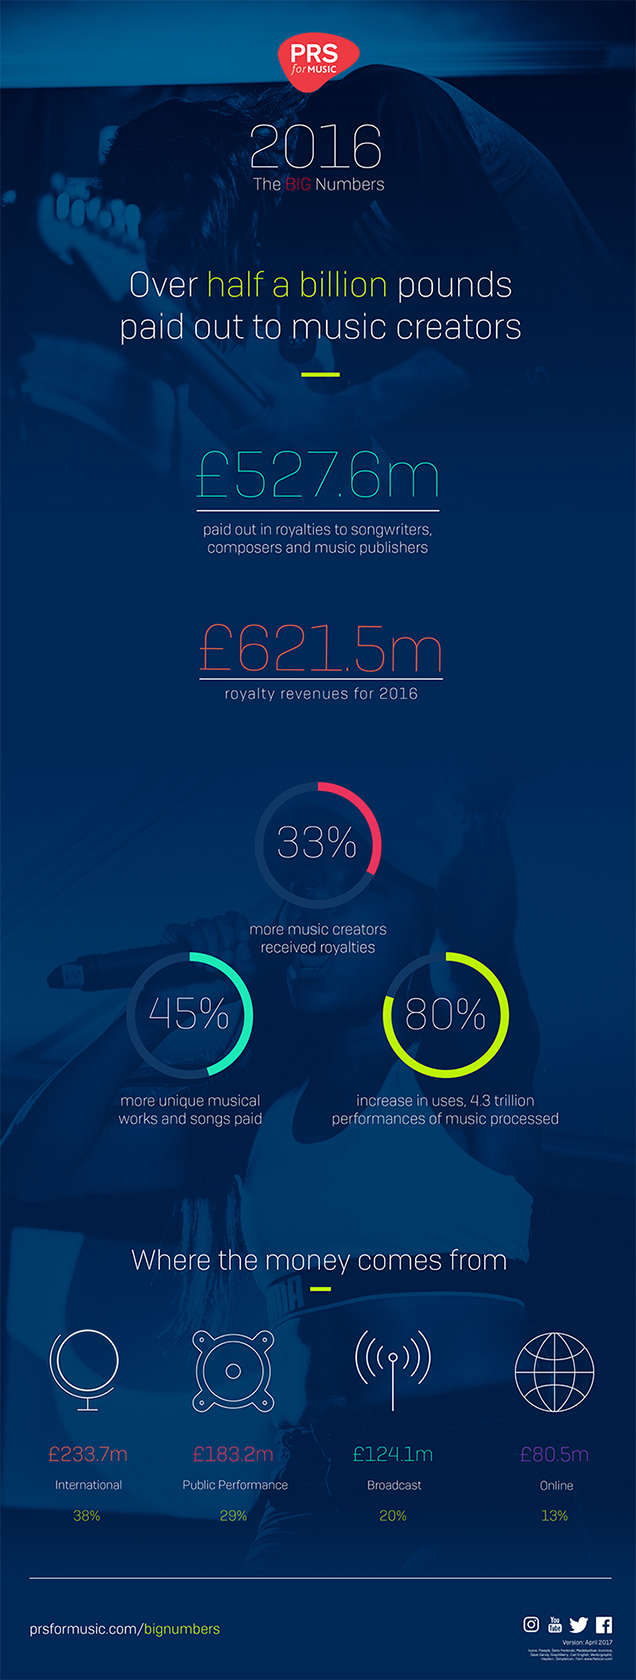 PRS for Music 2016 Financial Results Infographic